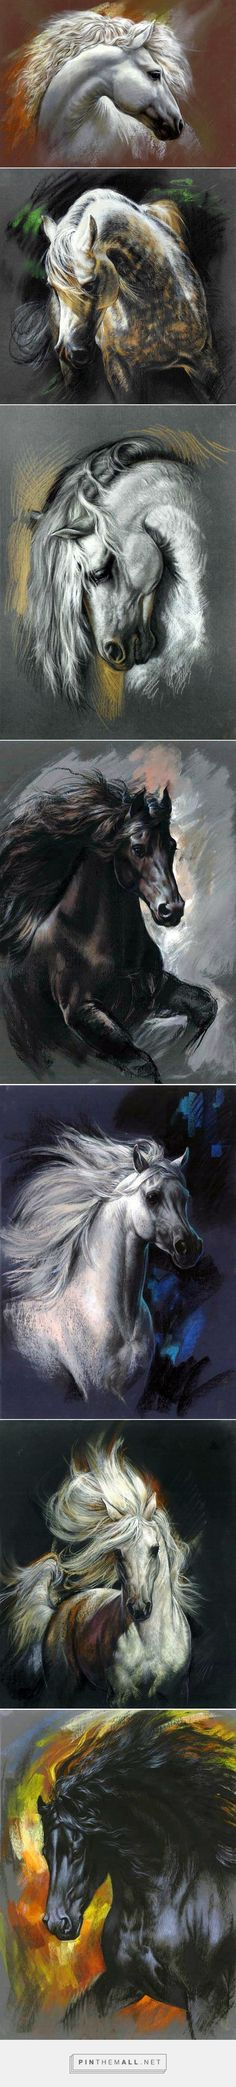 """Digital """"paintings"""" by Zorina Baldescu. - a grouped images picture - Pin Them All Horse Drawings, Animal Drawings, Pretty Horses, Beautiful Horses, Horse Artwork, White Horses, Tier Fotos, Equine Art, Horse Pictures"""